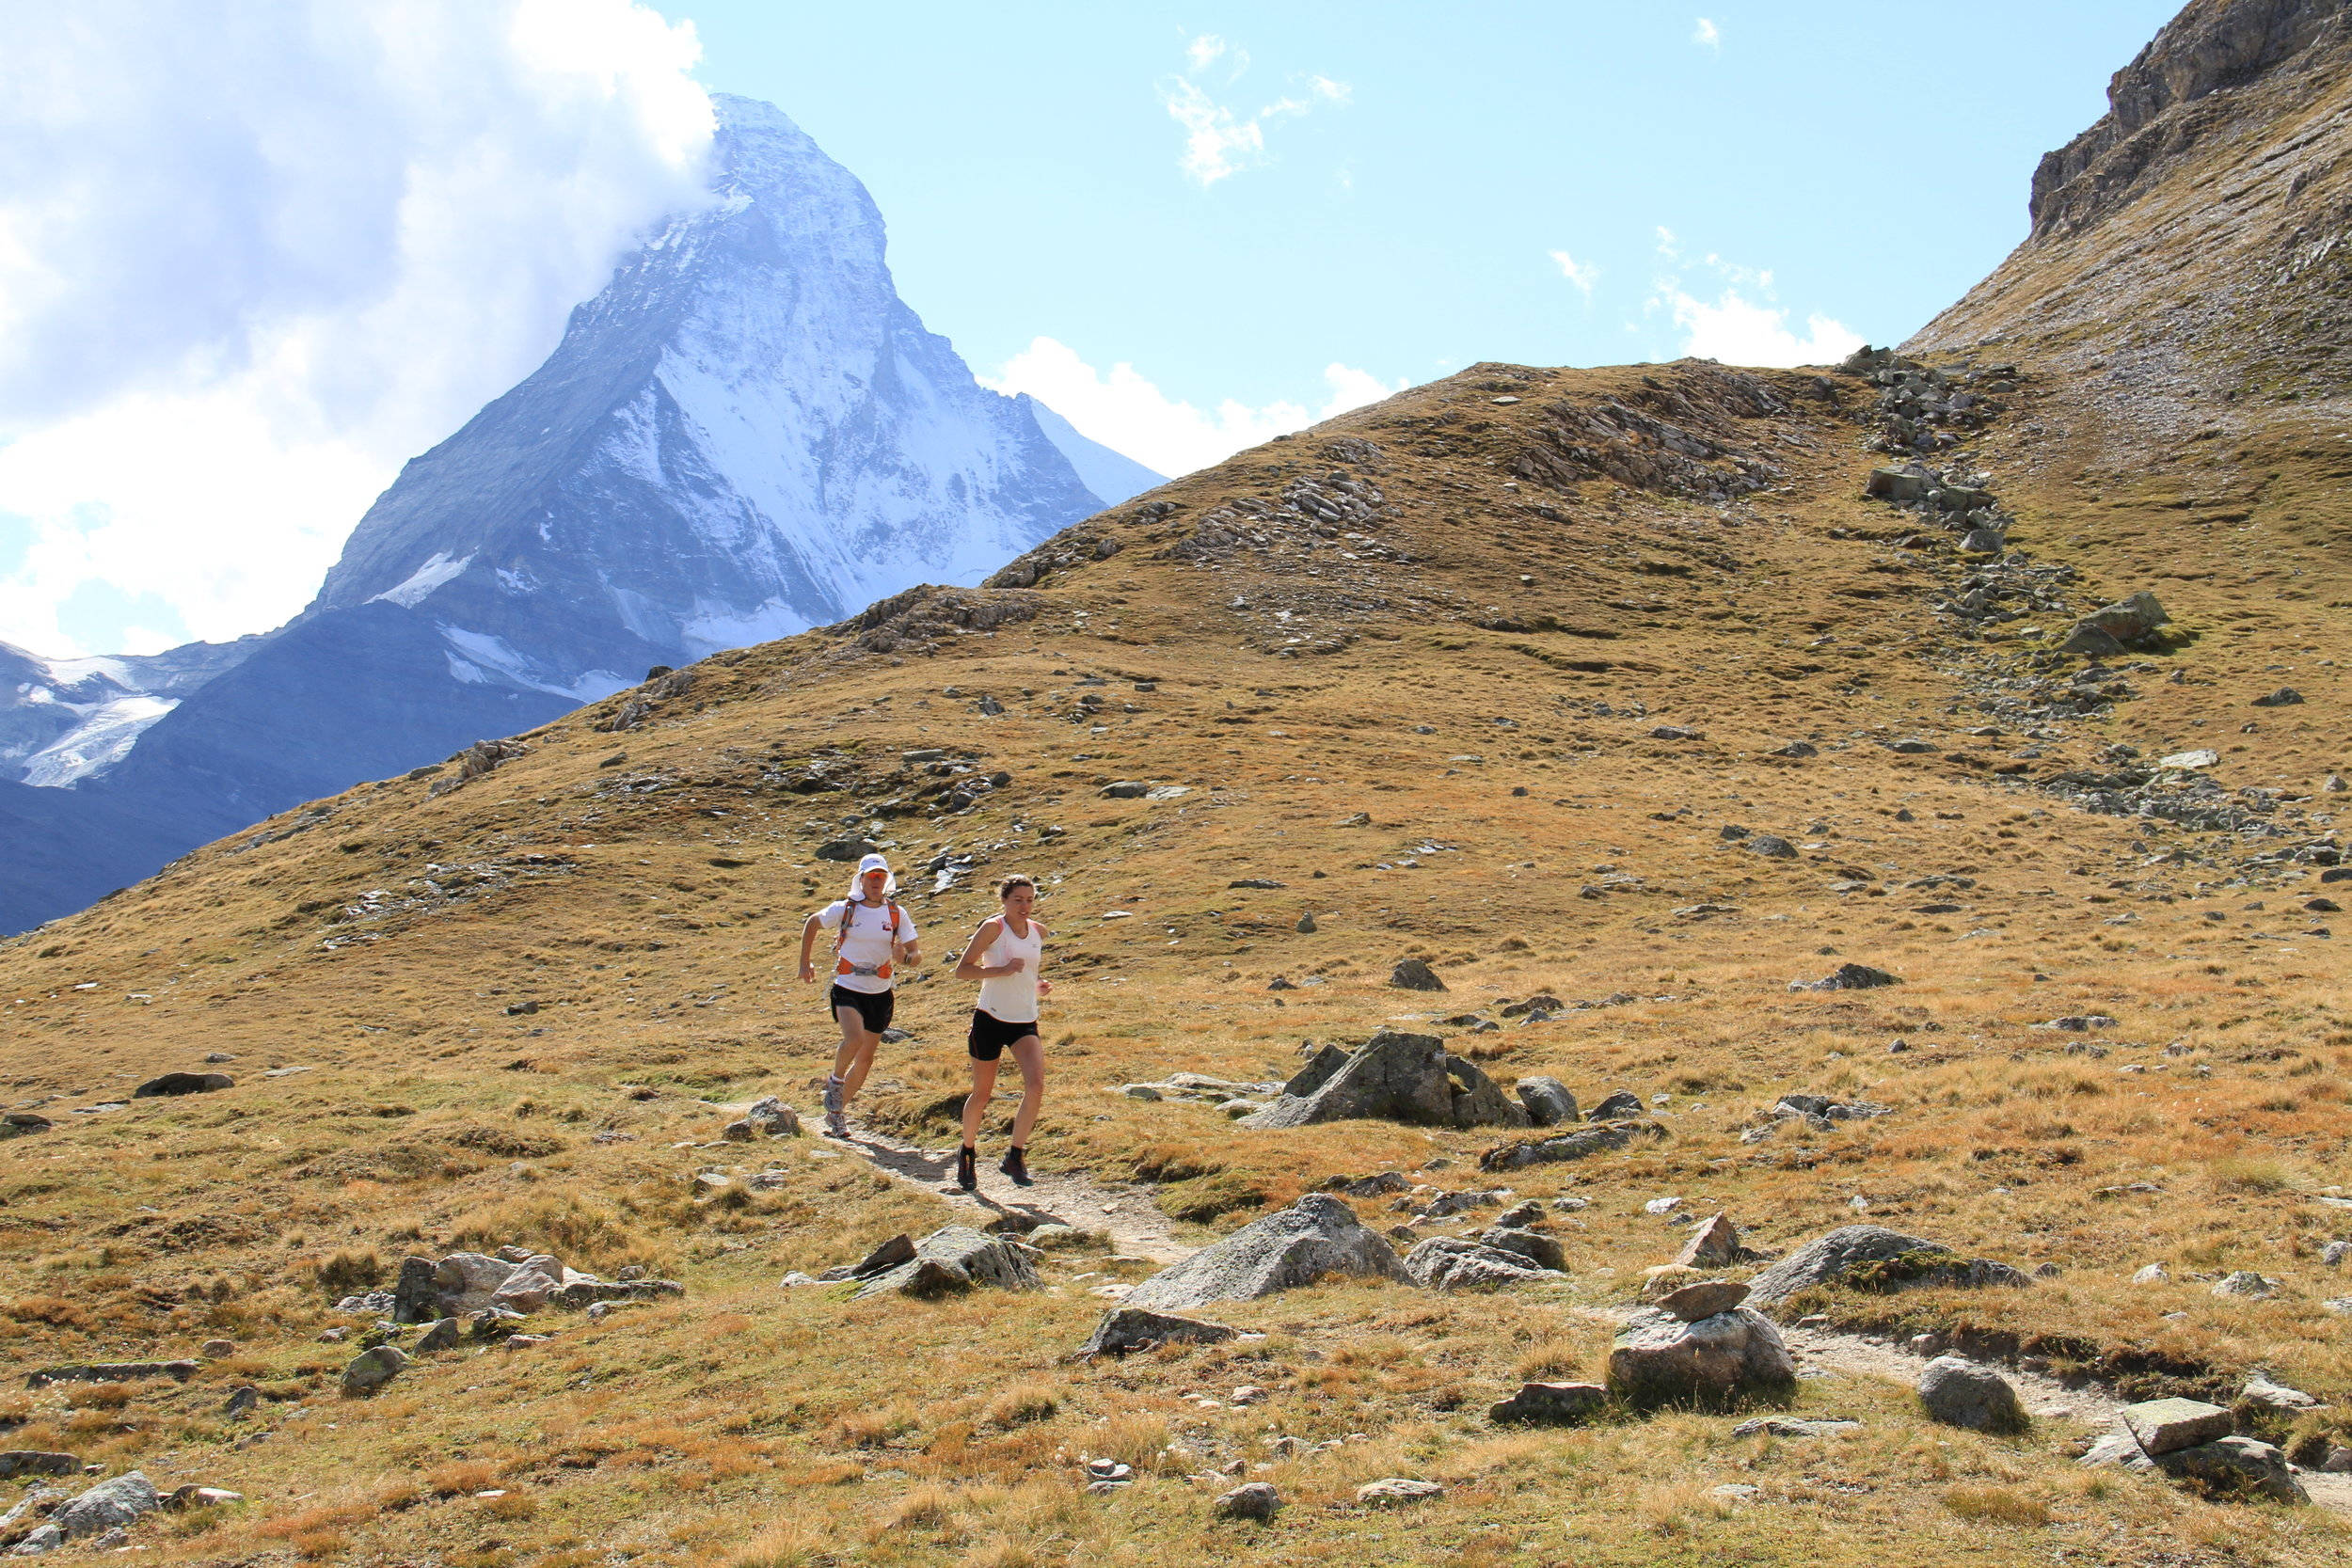 Emily and Matt trail running near the Matterhorn in Switzerland.